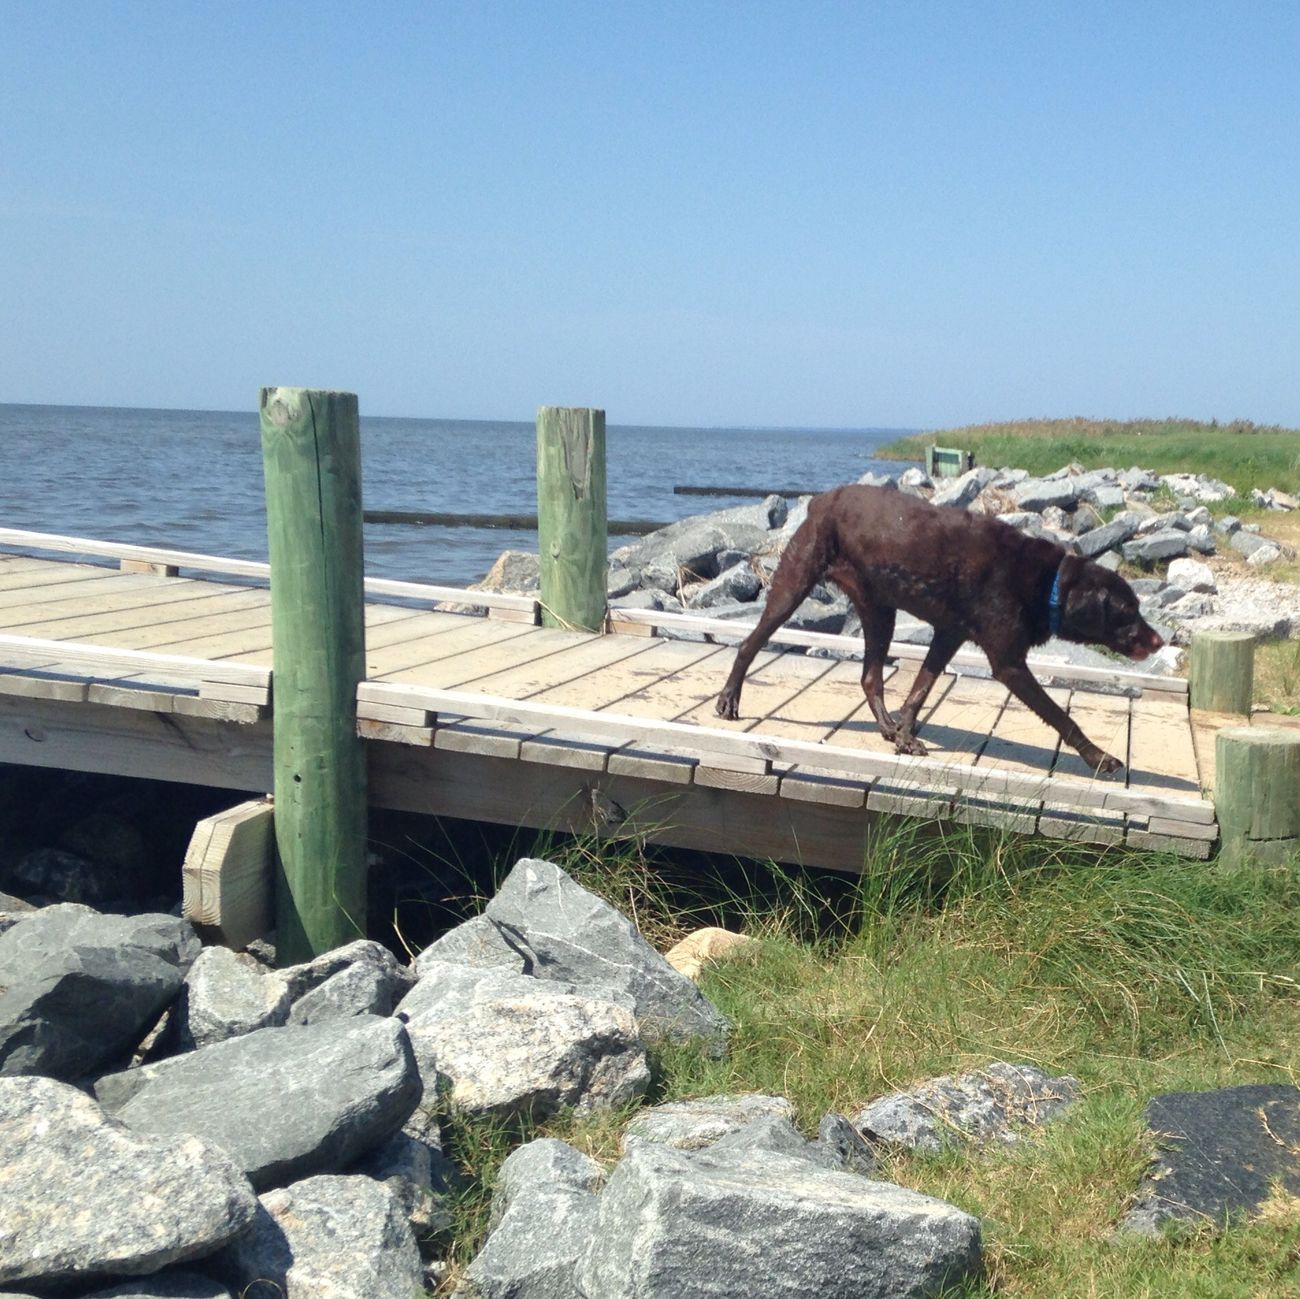 Strolling the dock. Enjoying Life Mydog Vacation OBX14